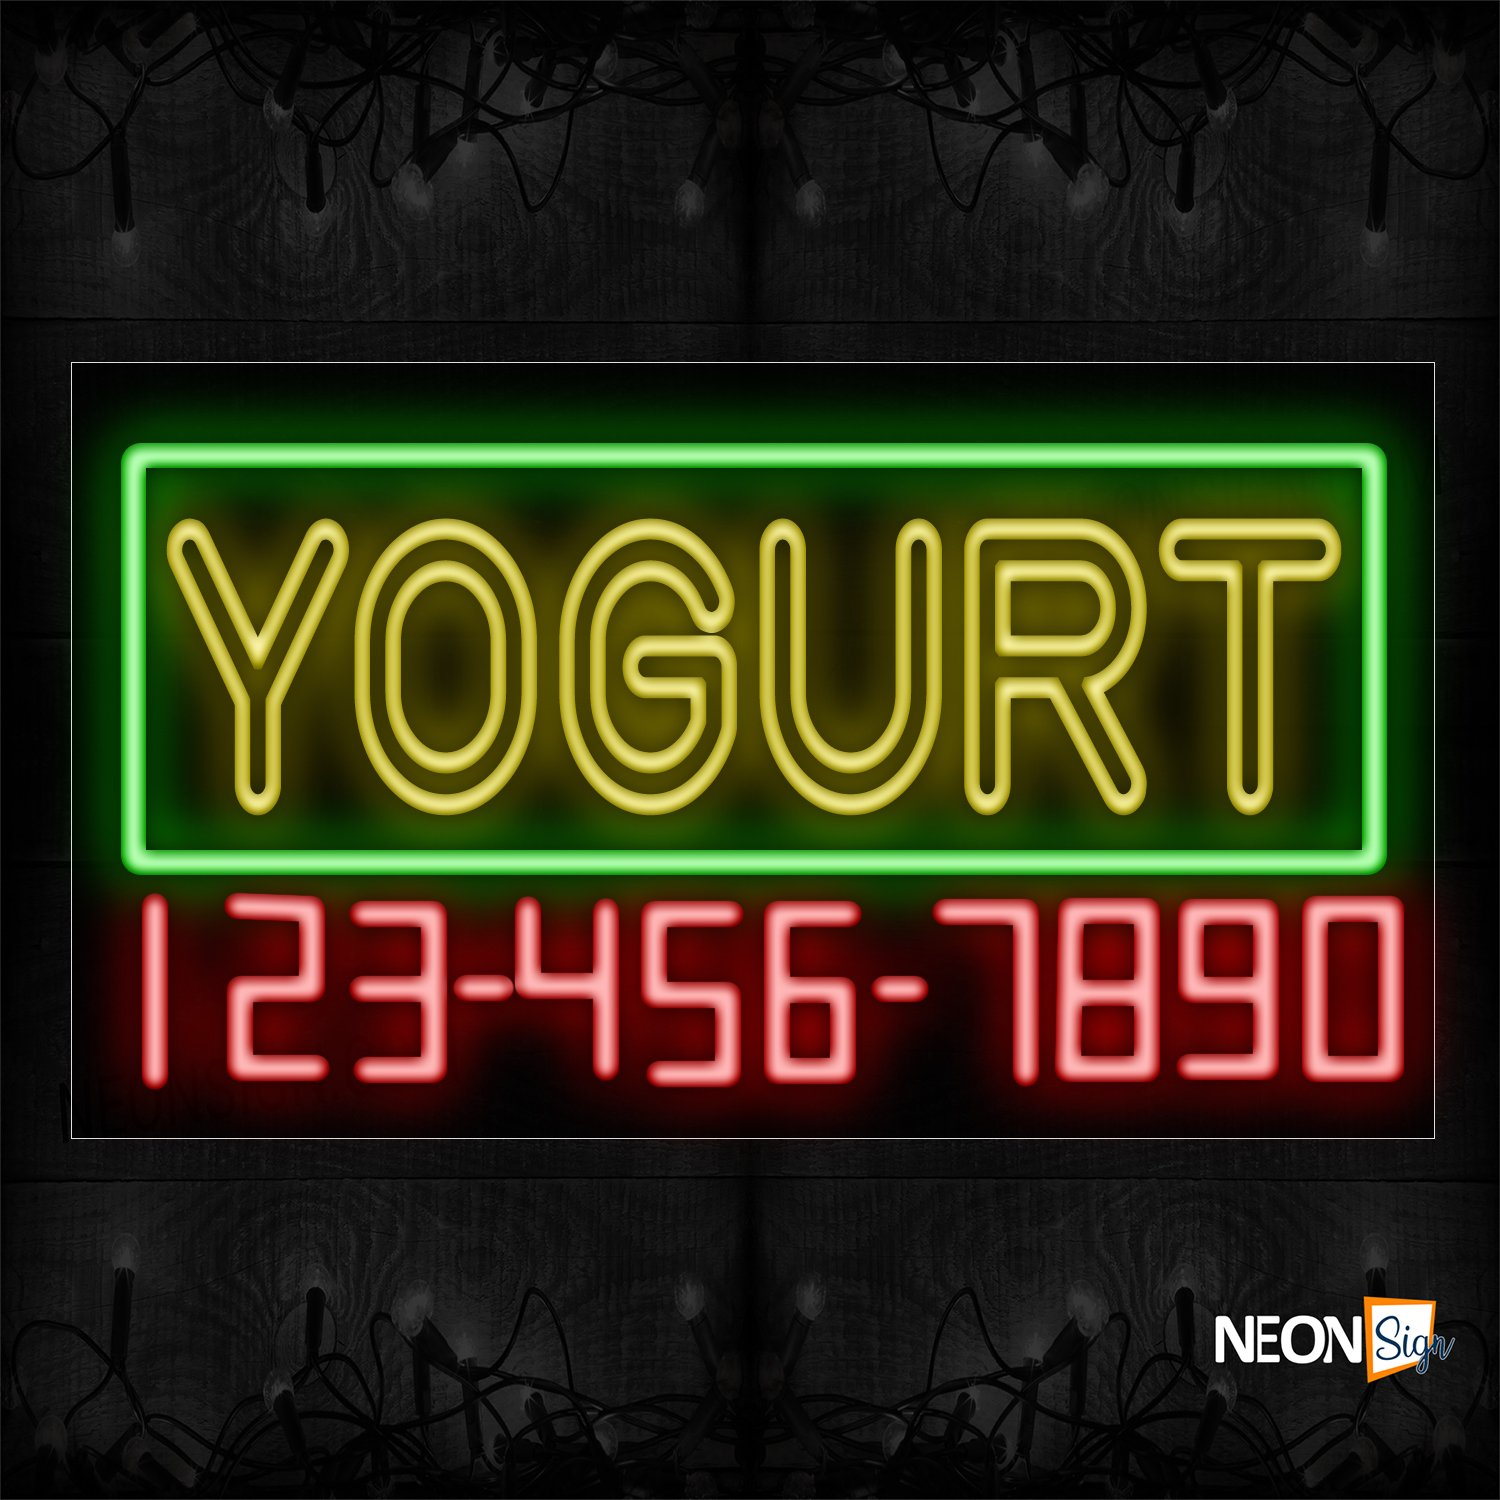 Image of 15119 Double Stroke Yogurt And Phone Number With Green Border_20x37 Black Backing